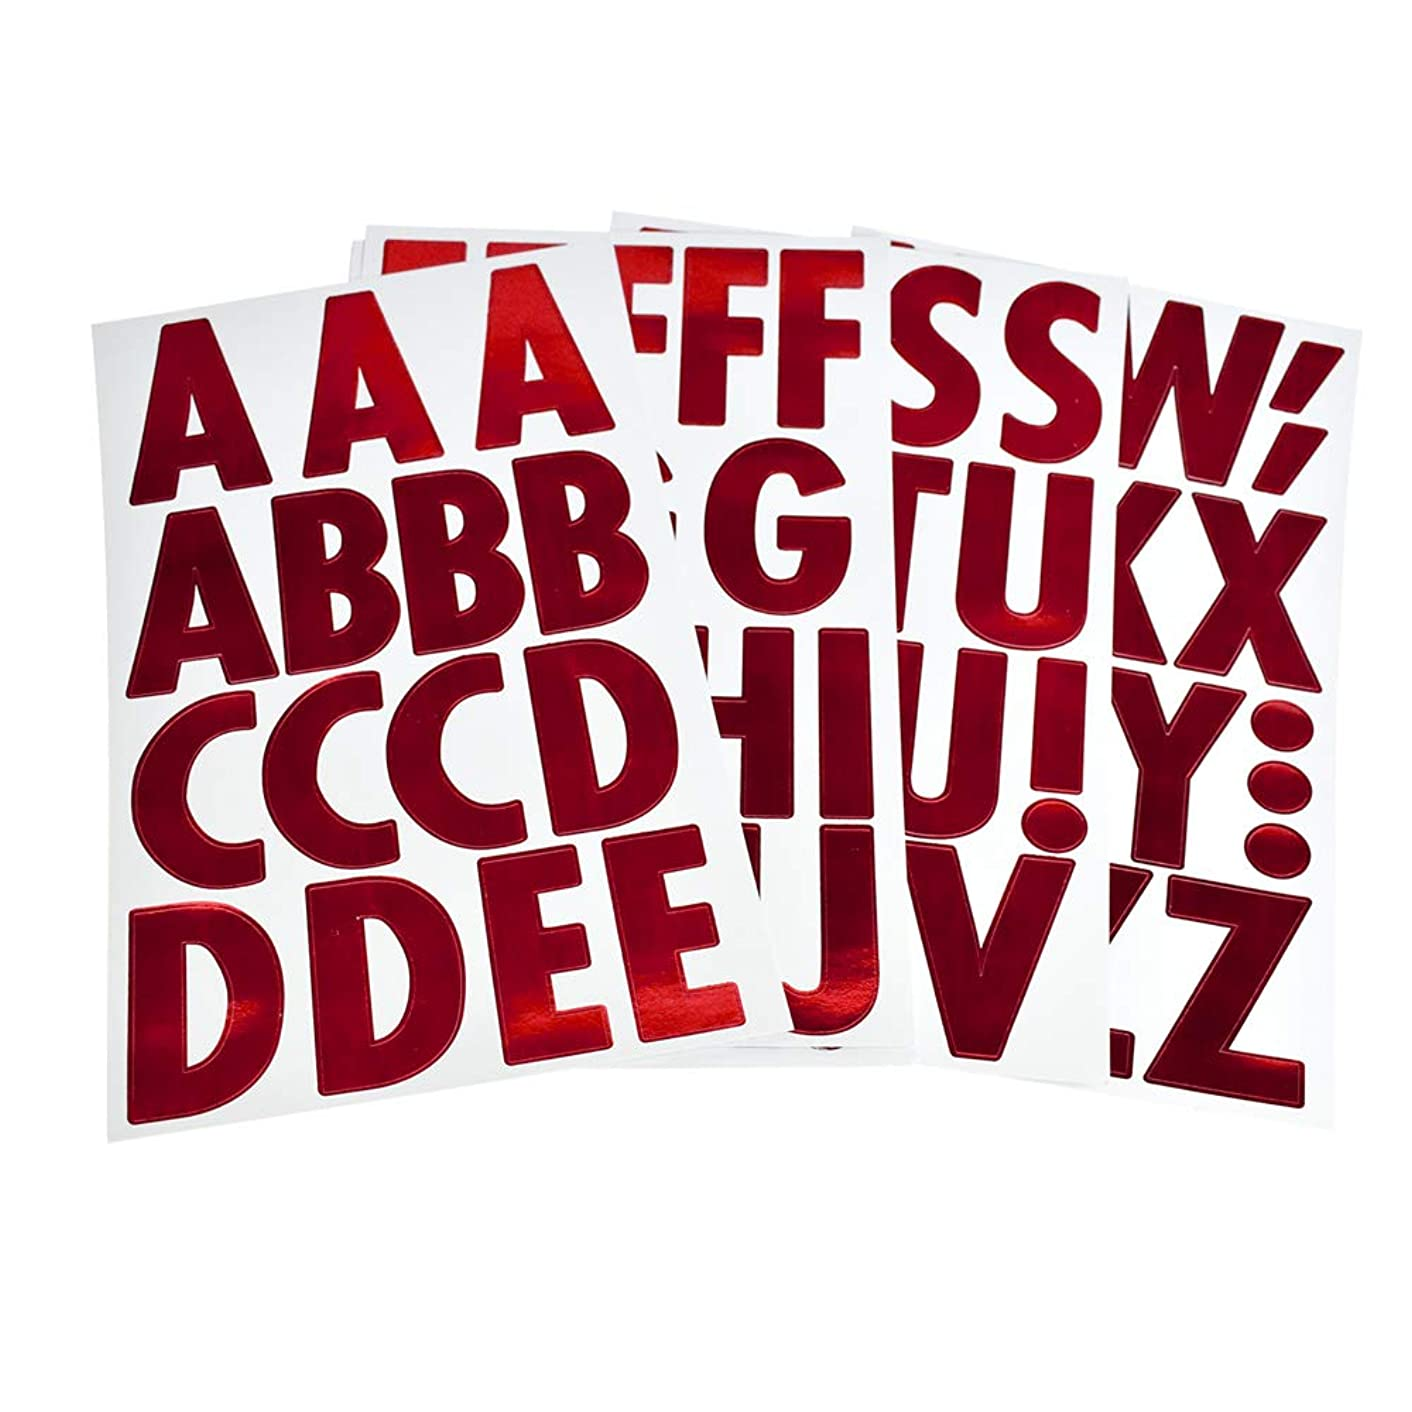 Homeford Big Font Alphabet Letter Stickers, Caps, 3-Inch, 26-Count (Metallic Red) yzfgfhdz18058000